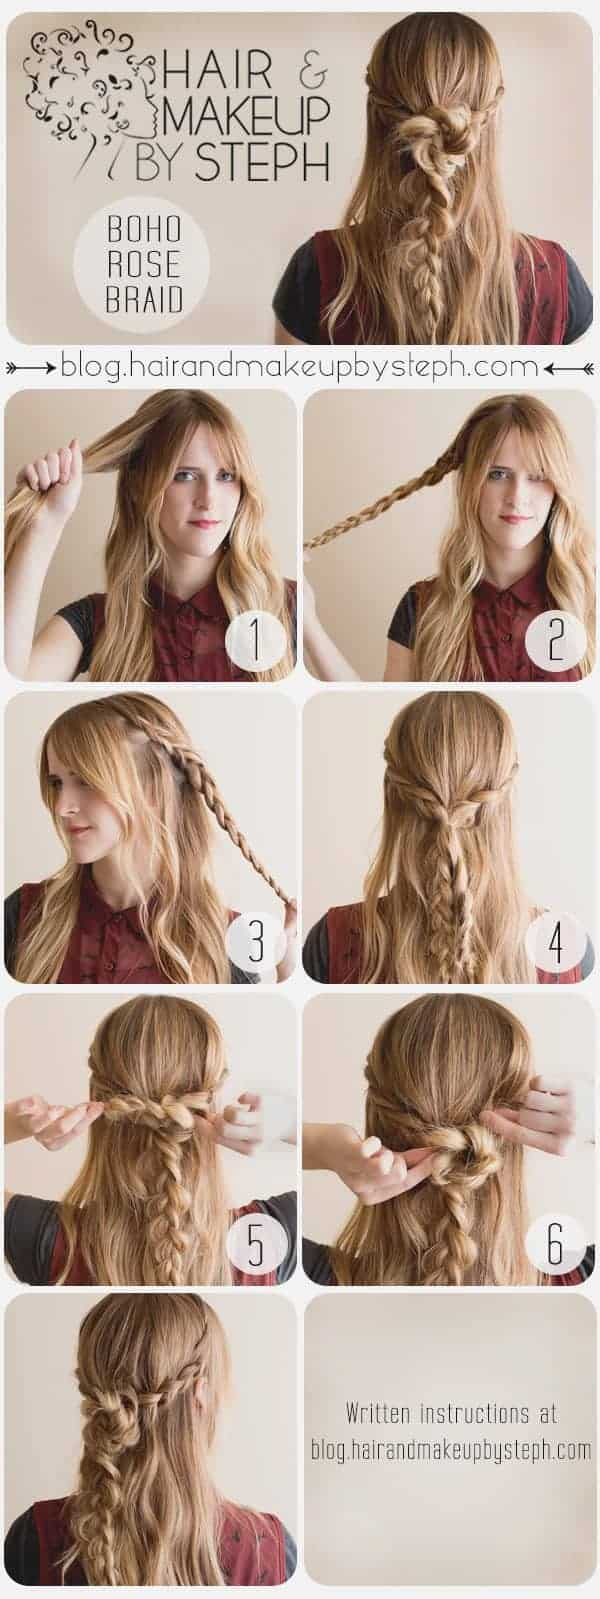 bohemian hairstyles MAking by steph